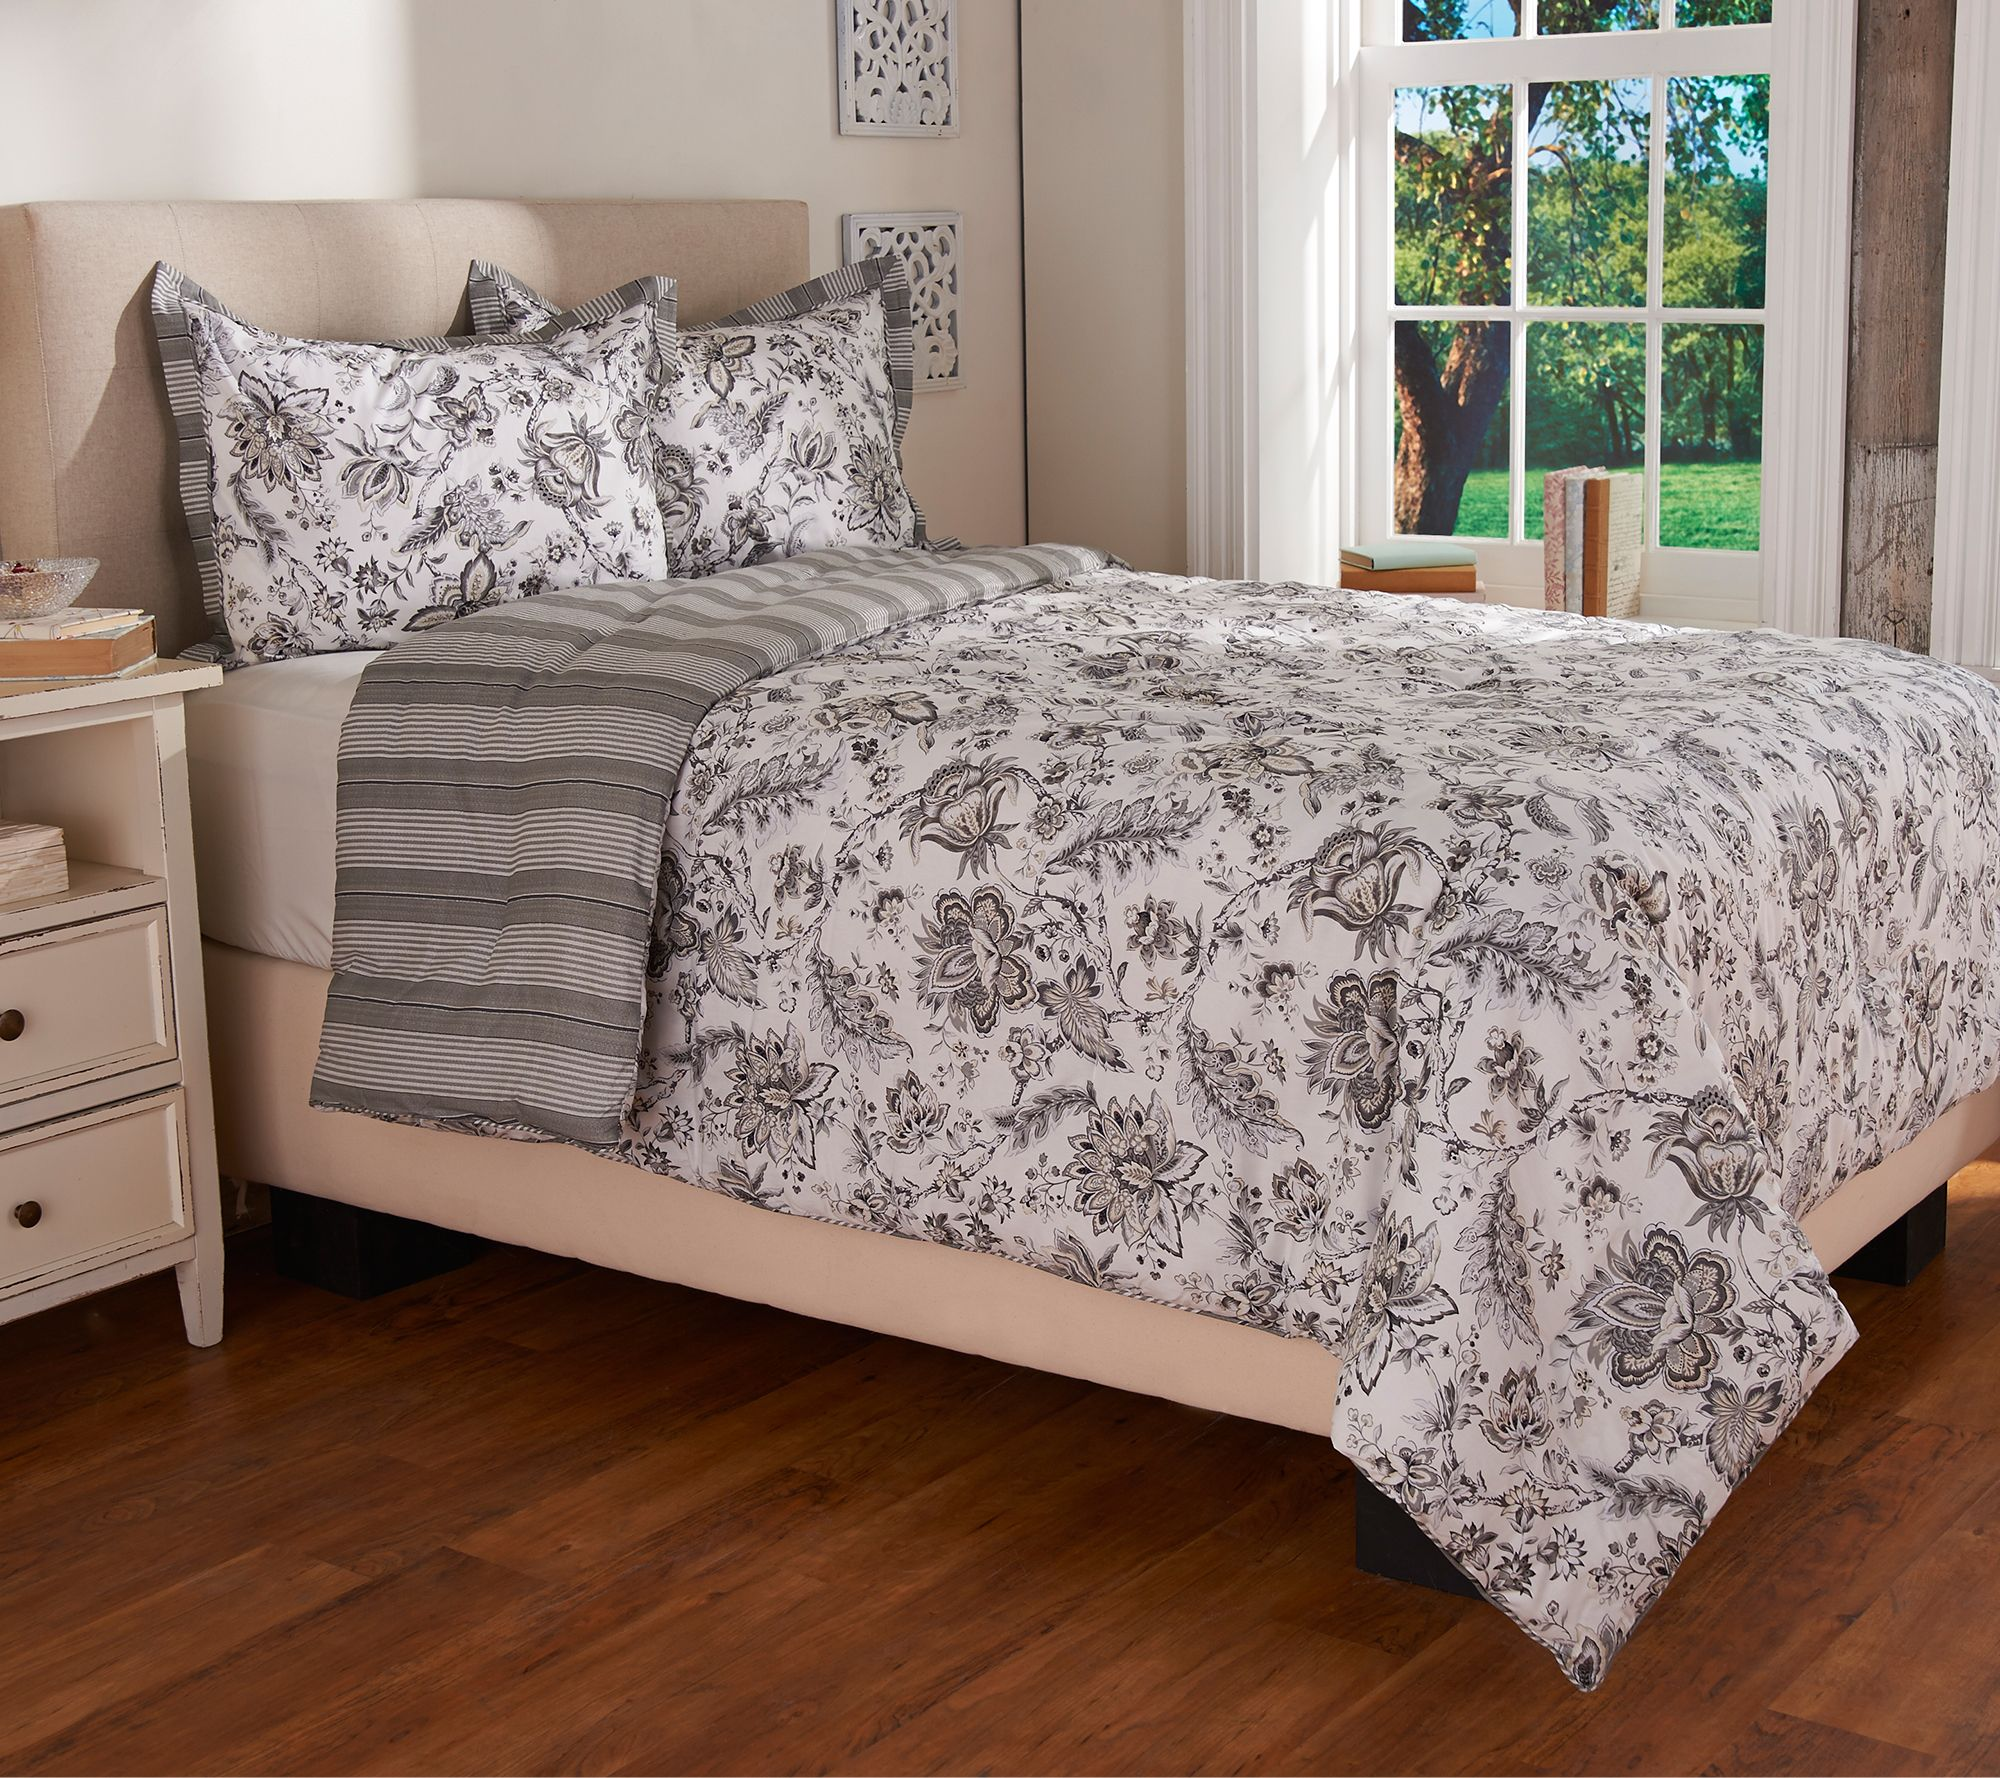 gold camuto comforter pinterest rose vince on pin comfy this by looks sets martin heather so set home queen